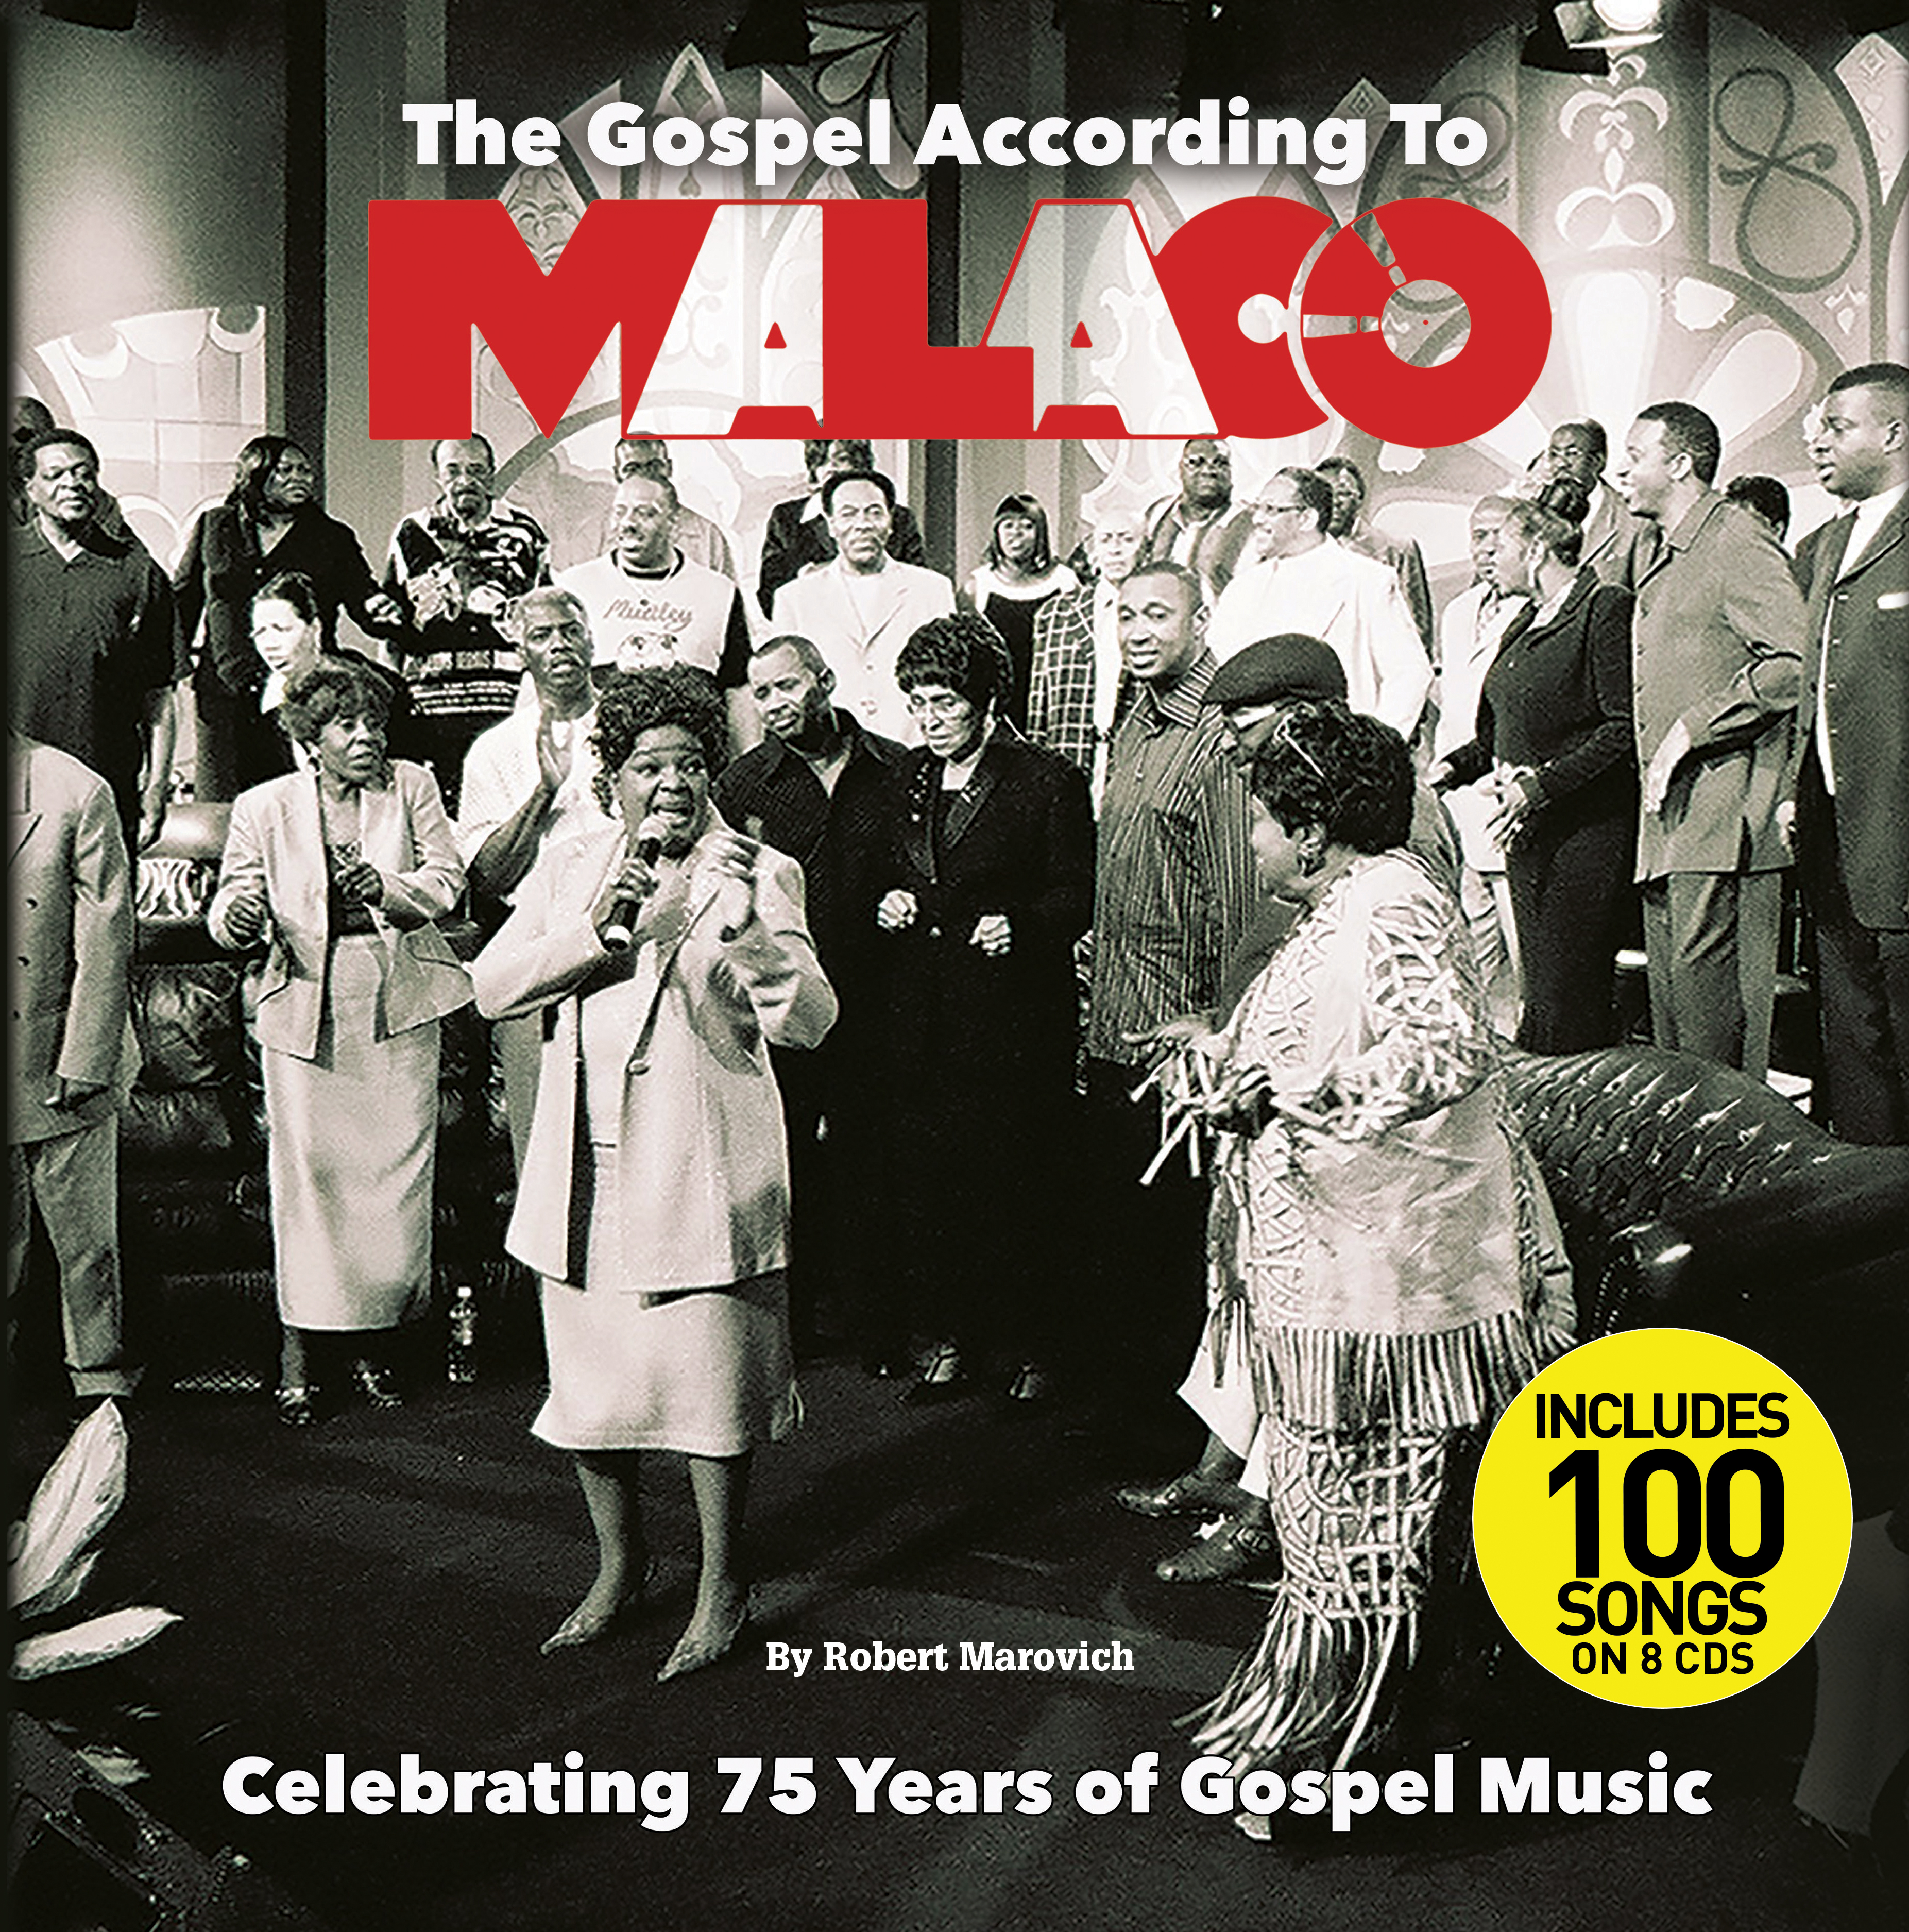 The Gospel According To Malaco: Celebrating 75 Years Of Gospel Music